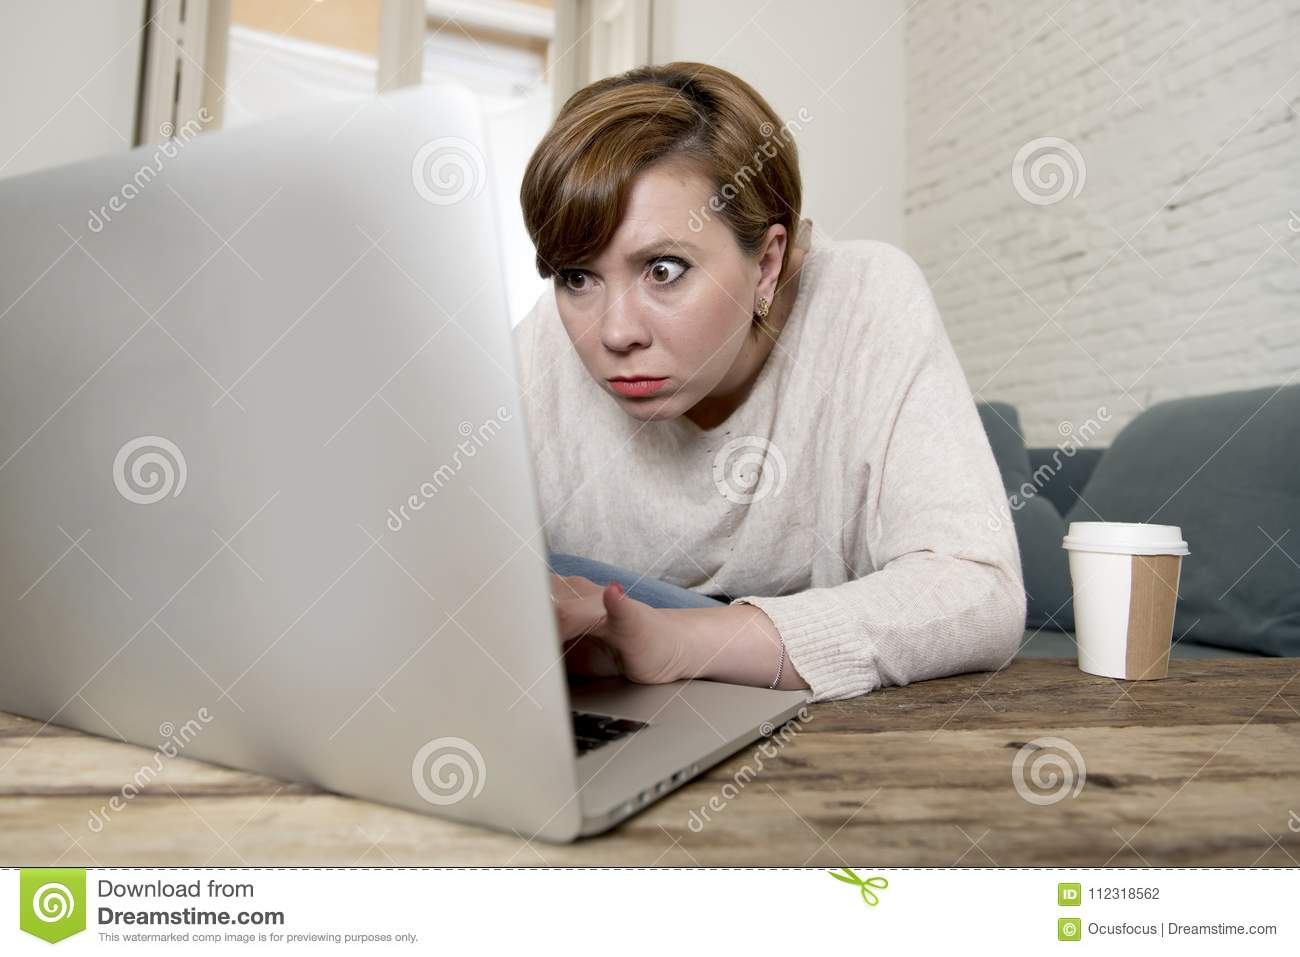 Young attractive and busy woman at home sofa couch doing some laptop computer work in stress looking worried in entrepreneur lifes